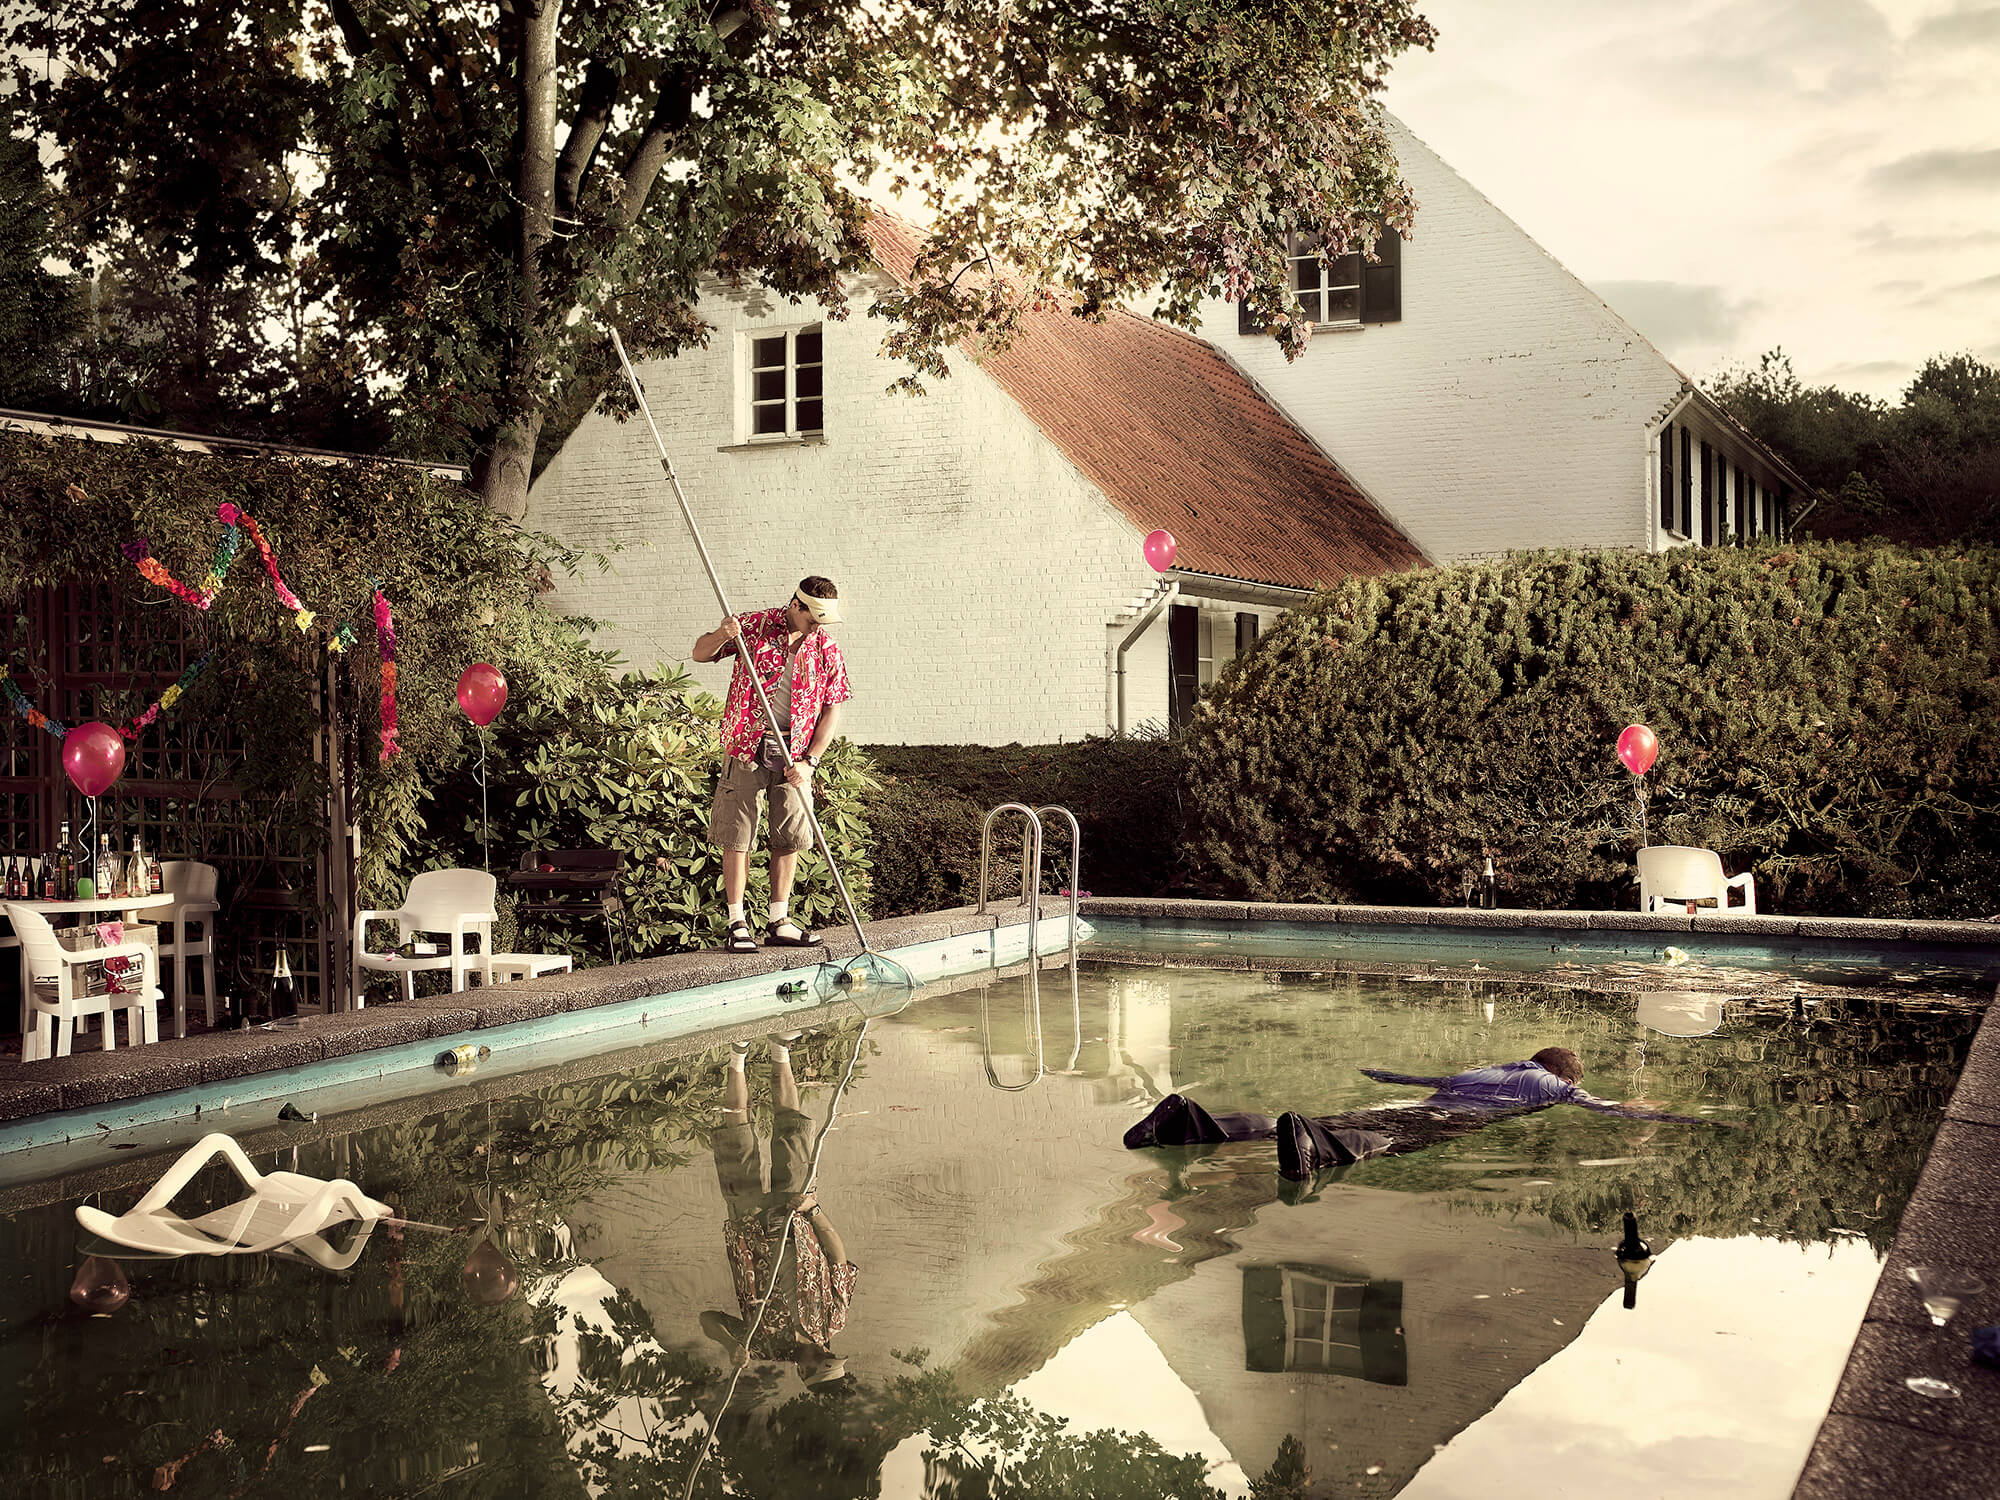 Pool Afterparty by Geert de Taeye